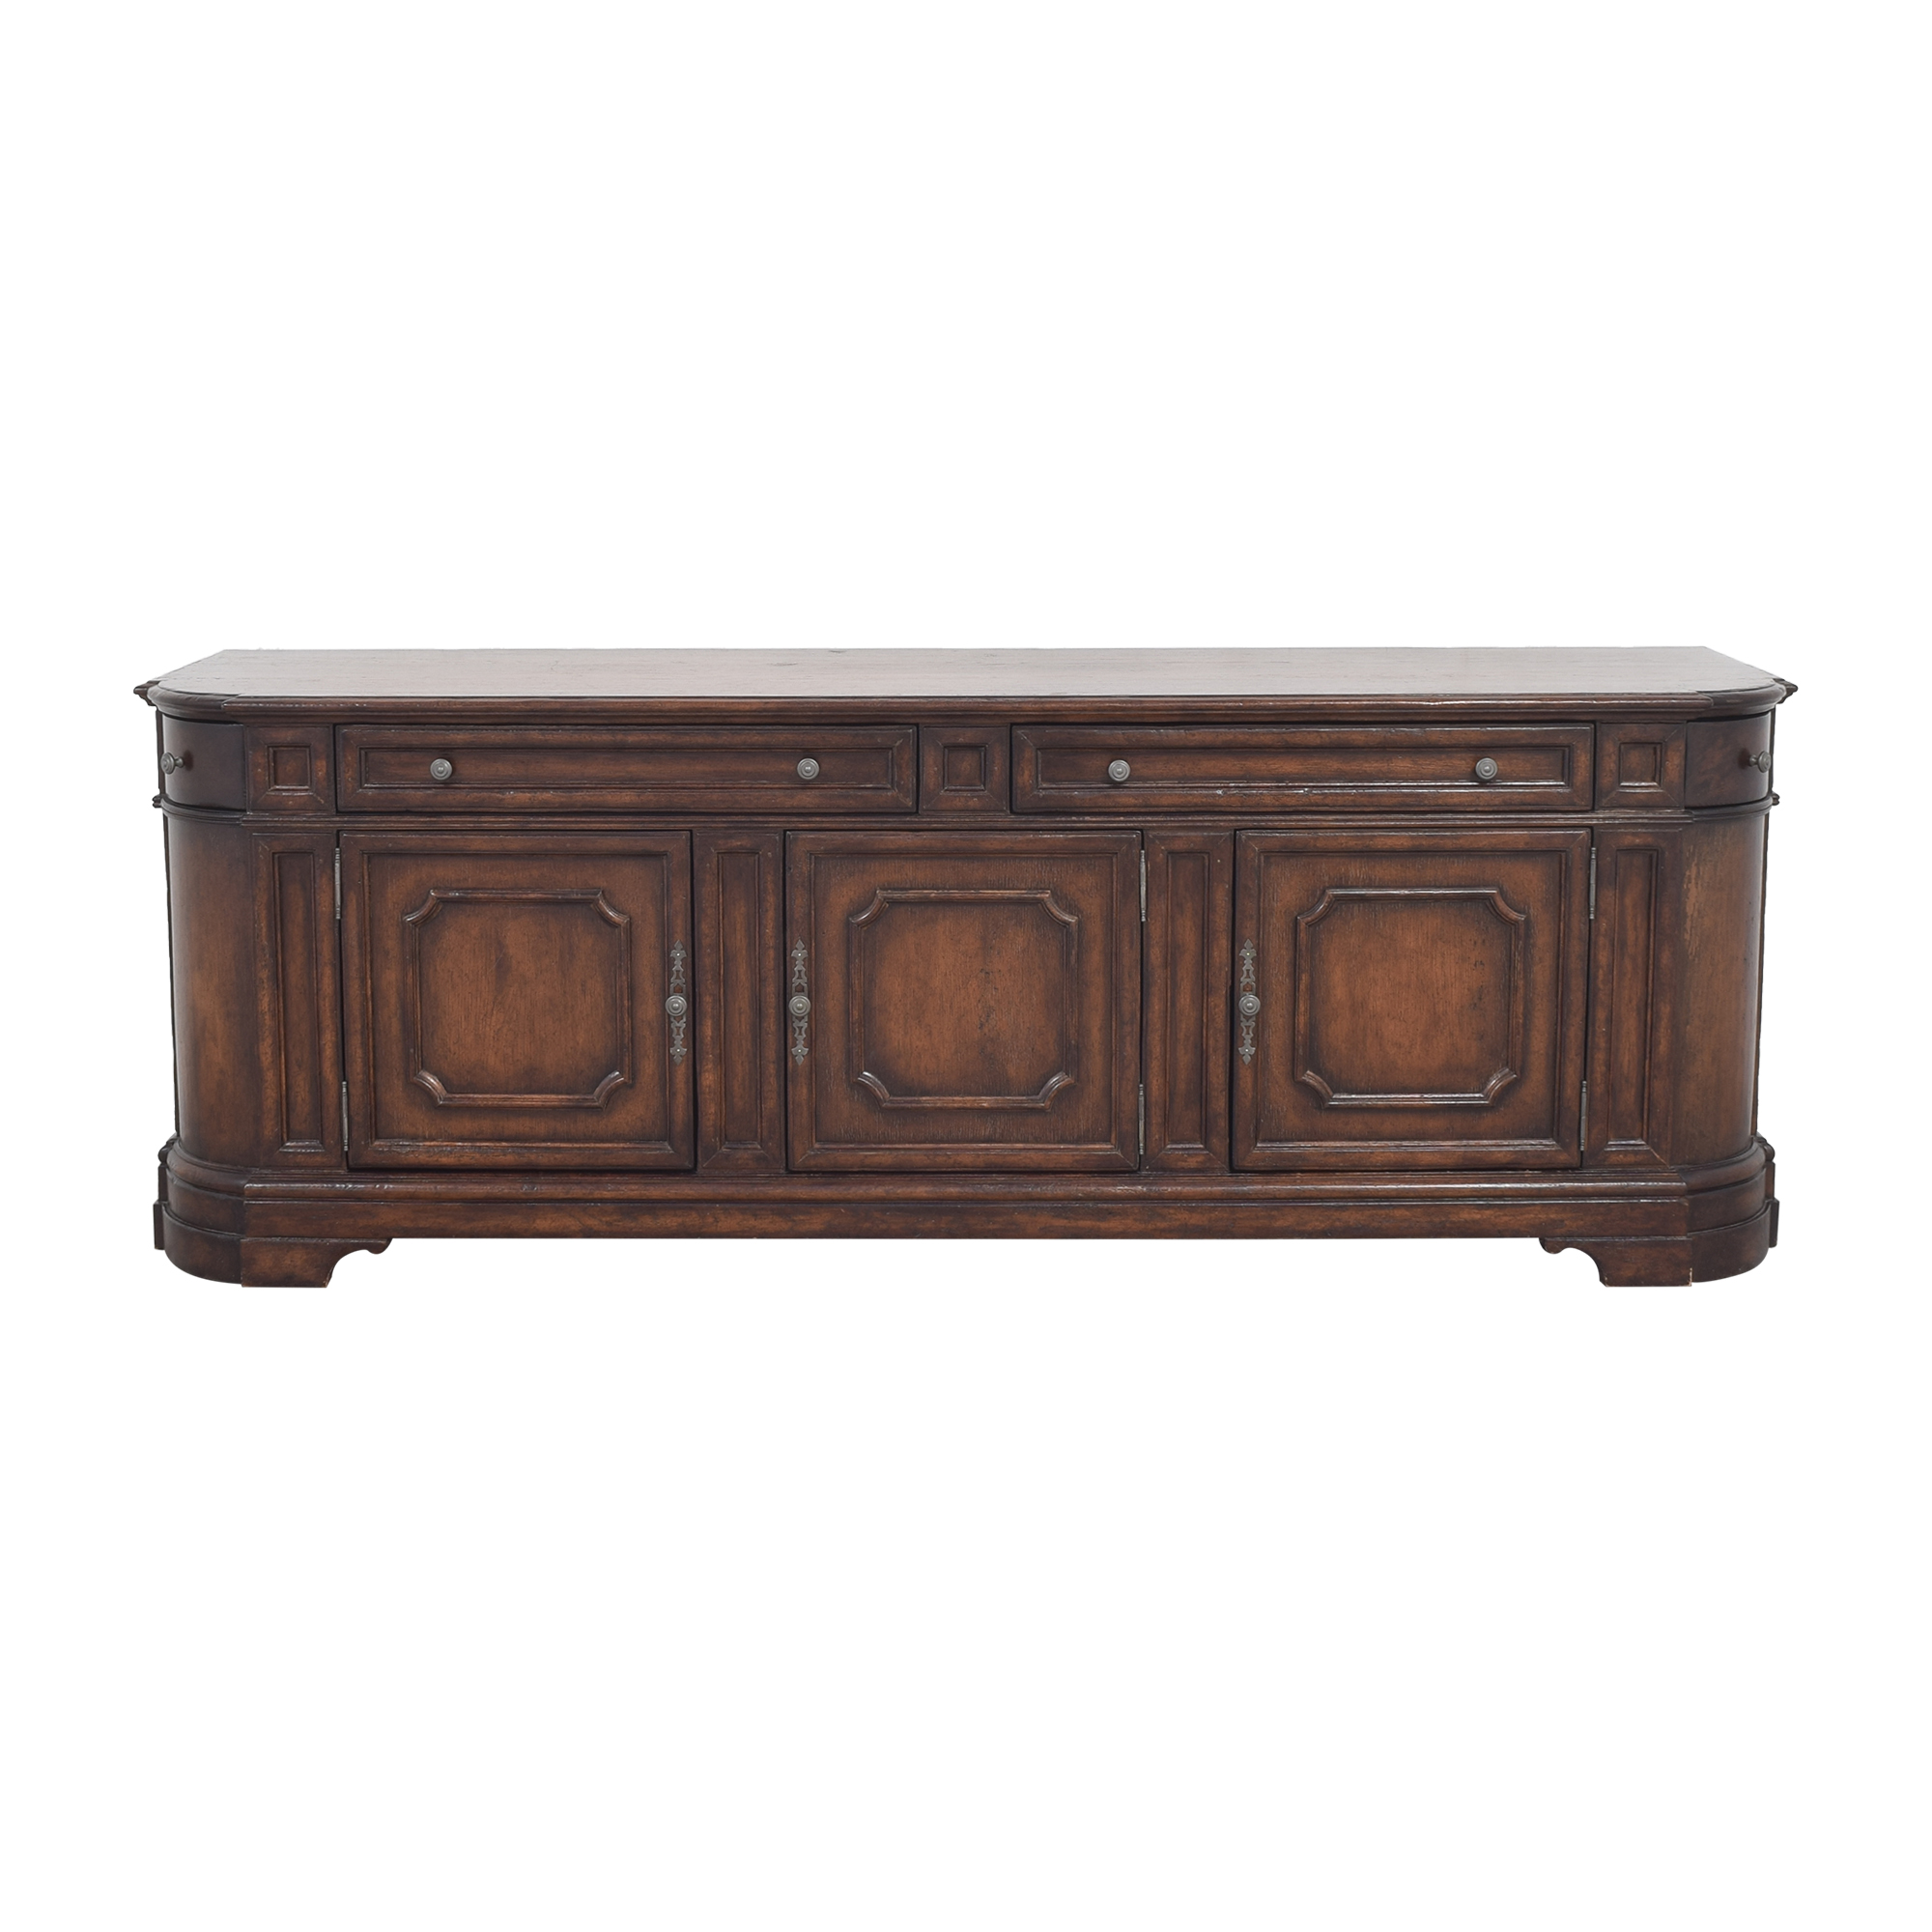 Collection Reproductions Collection Reproductions Tuscan Sideboard dimensions